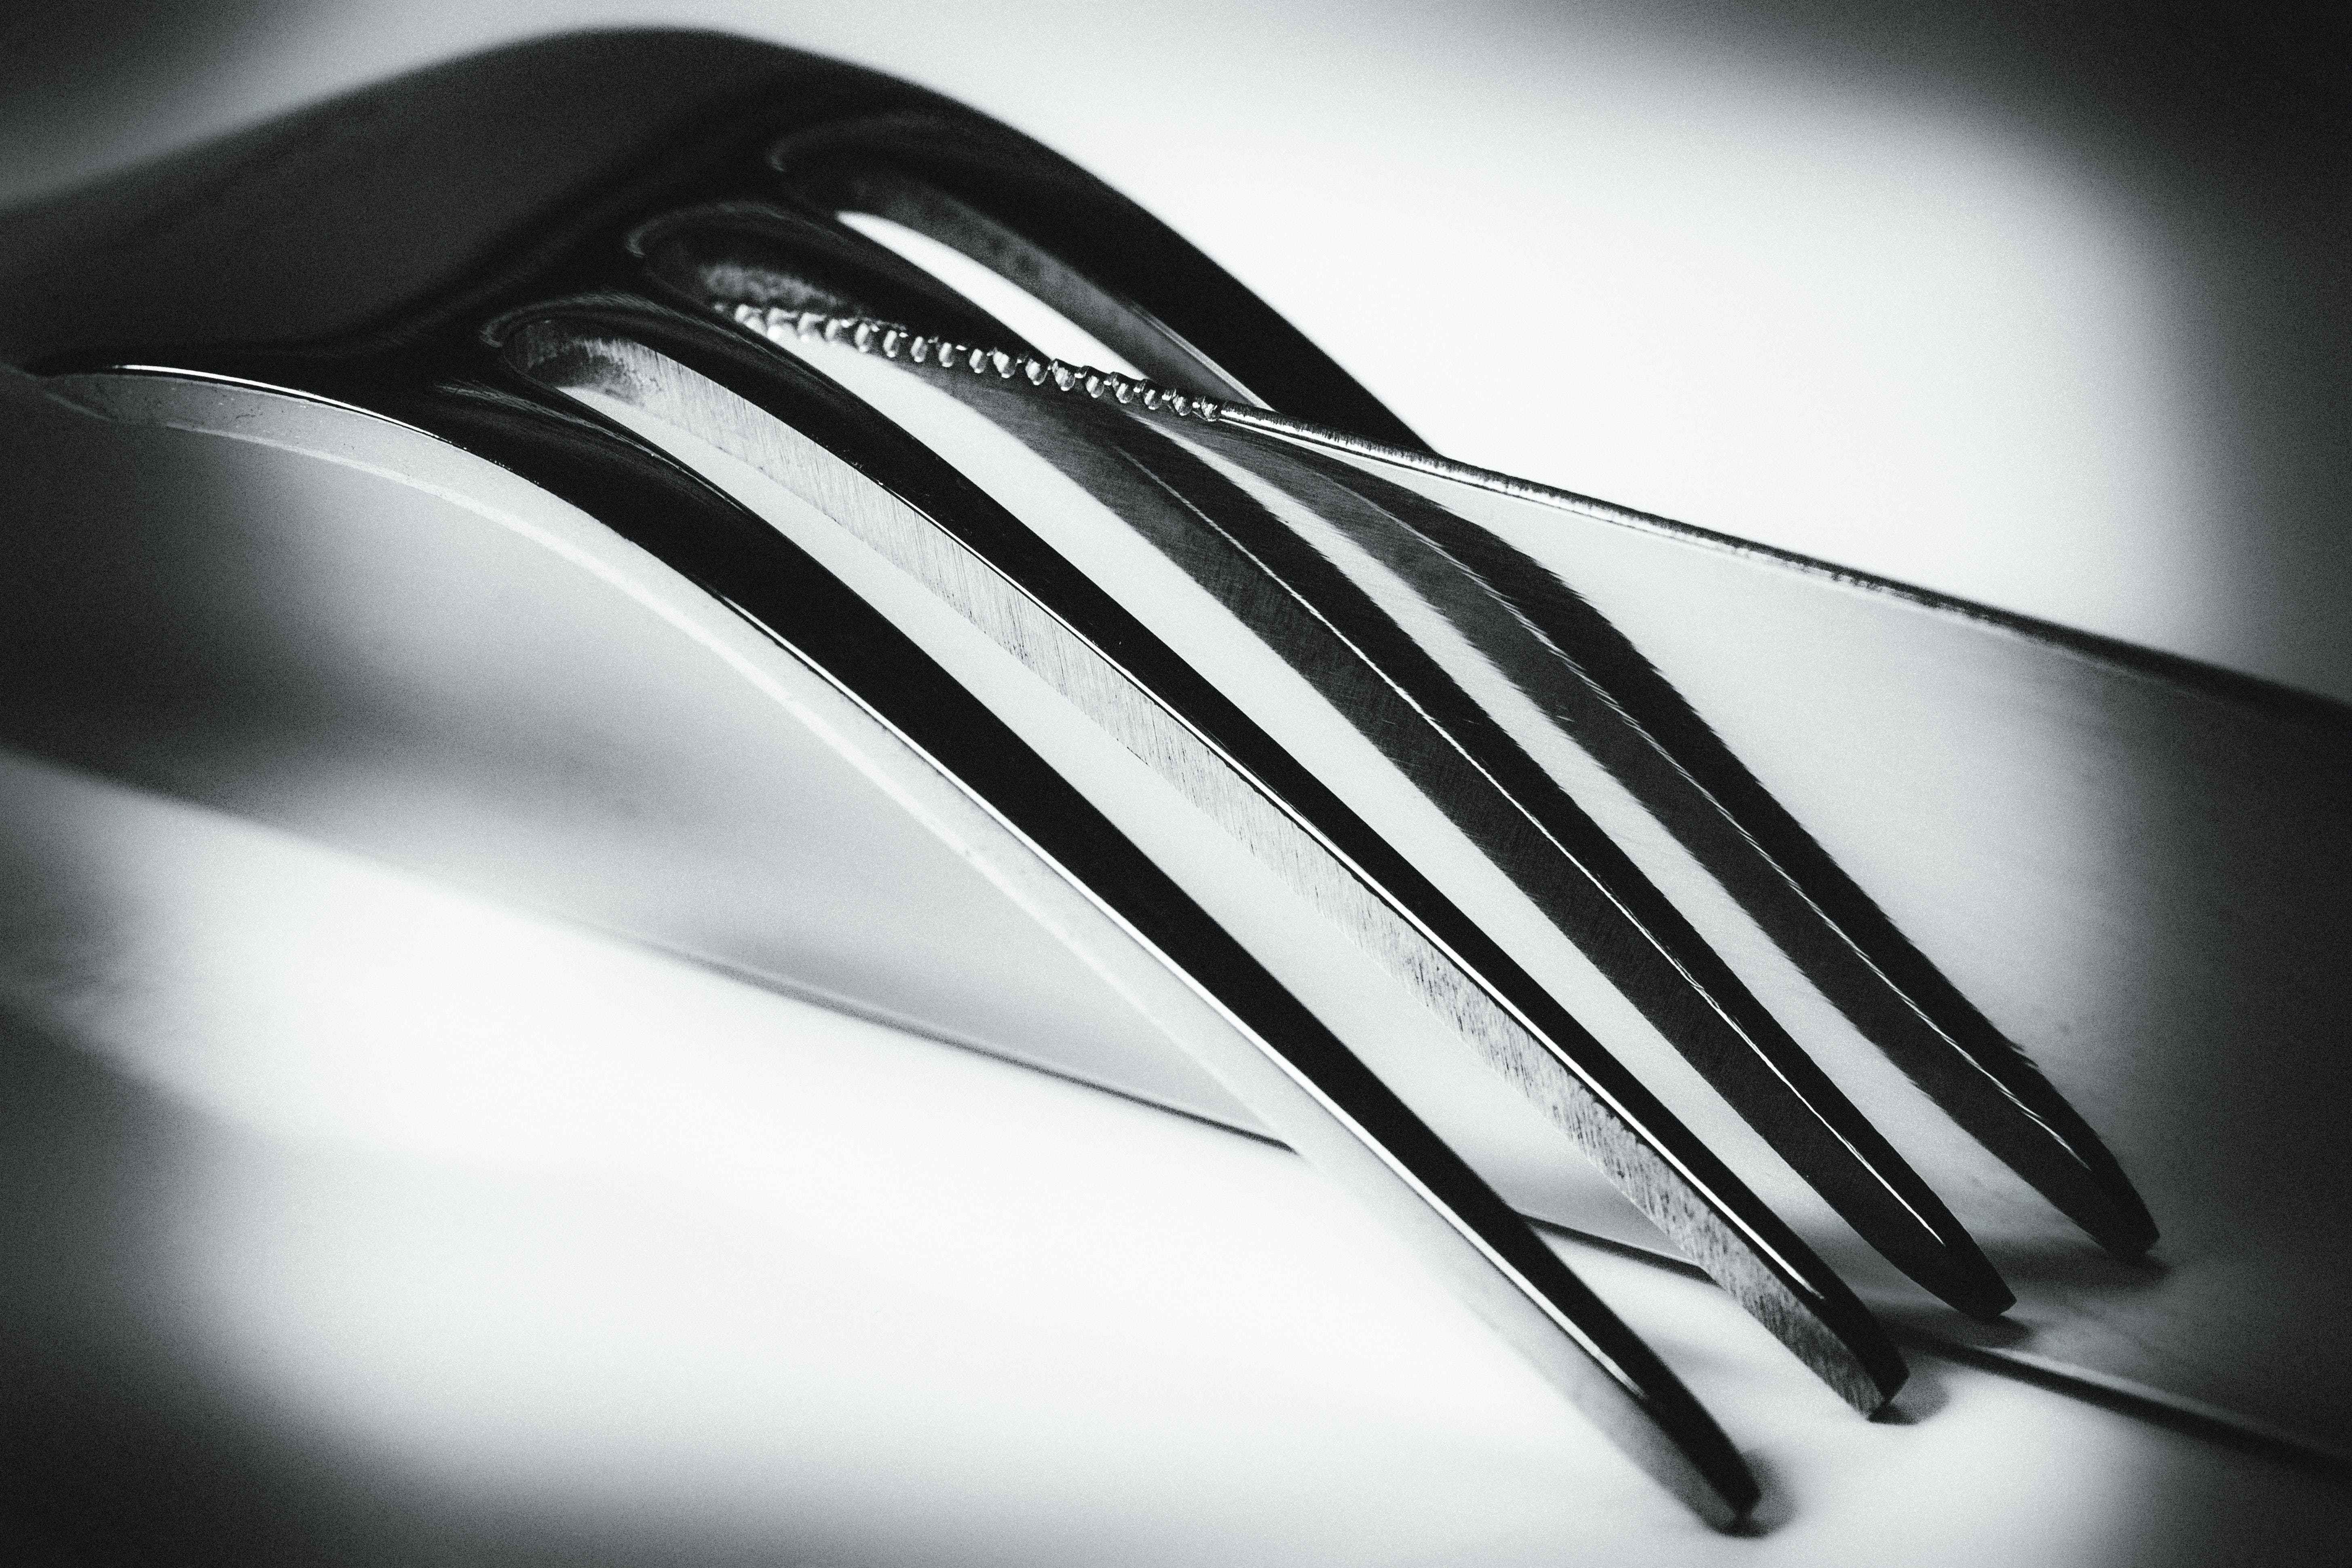 Silver Metal Fork on Top of a Silver Butter Knife